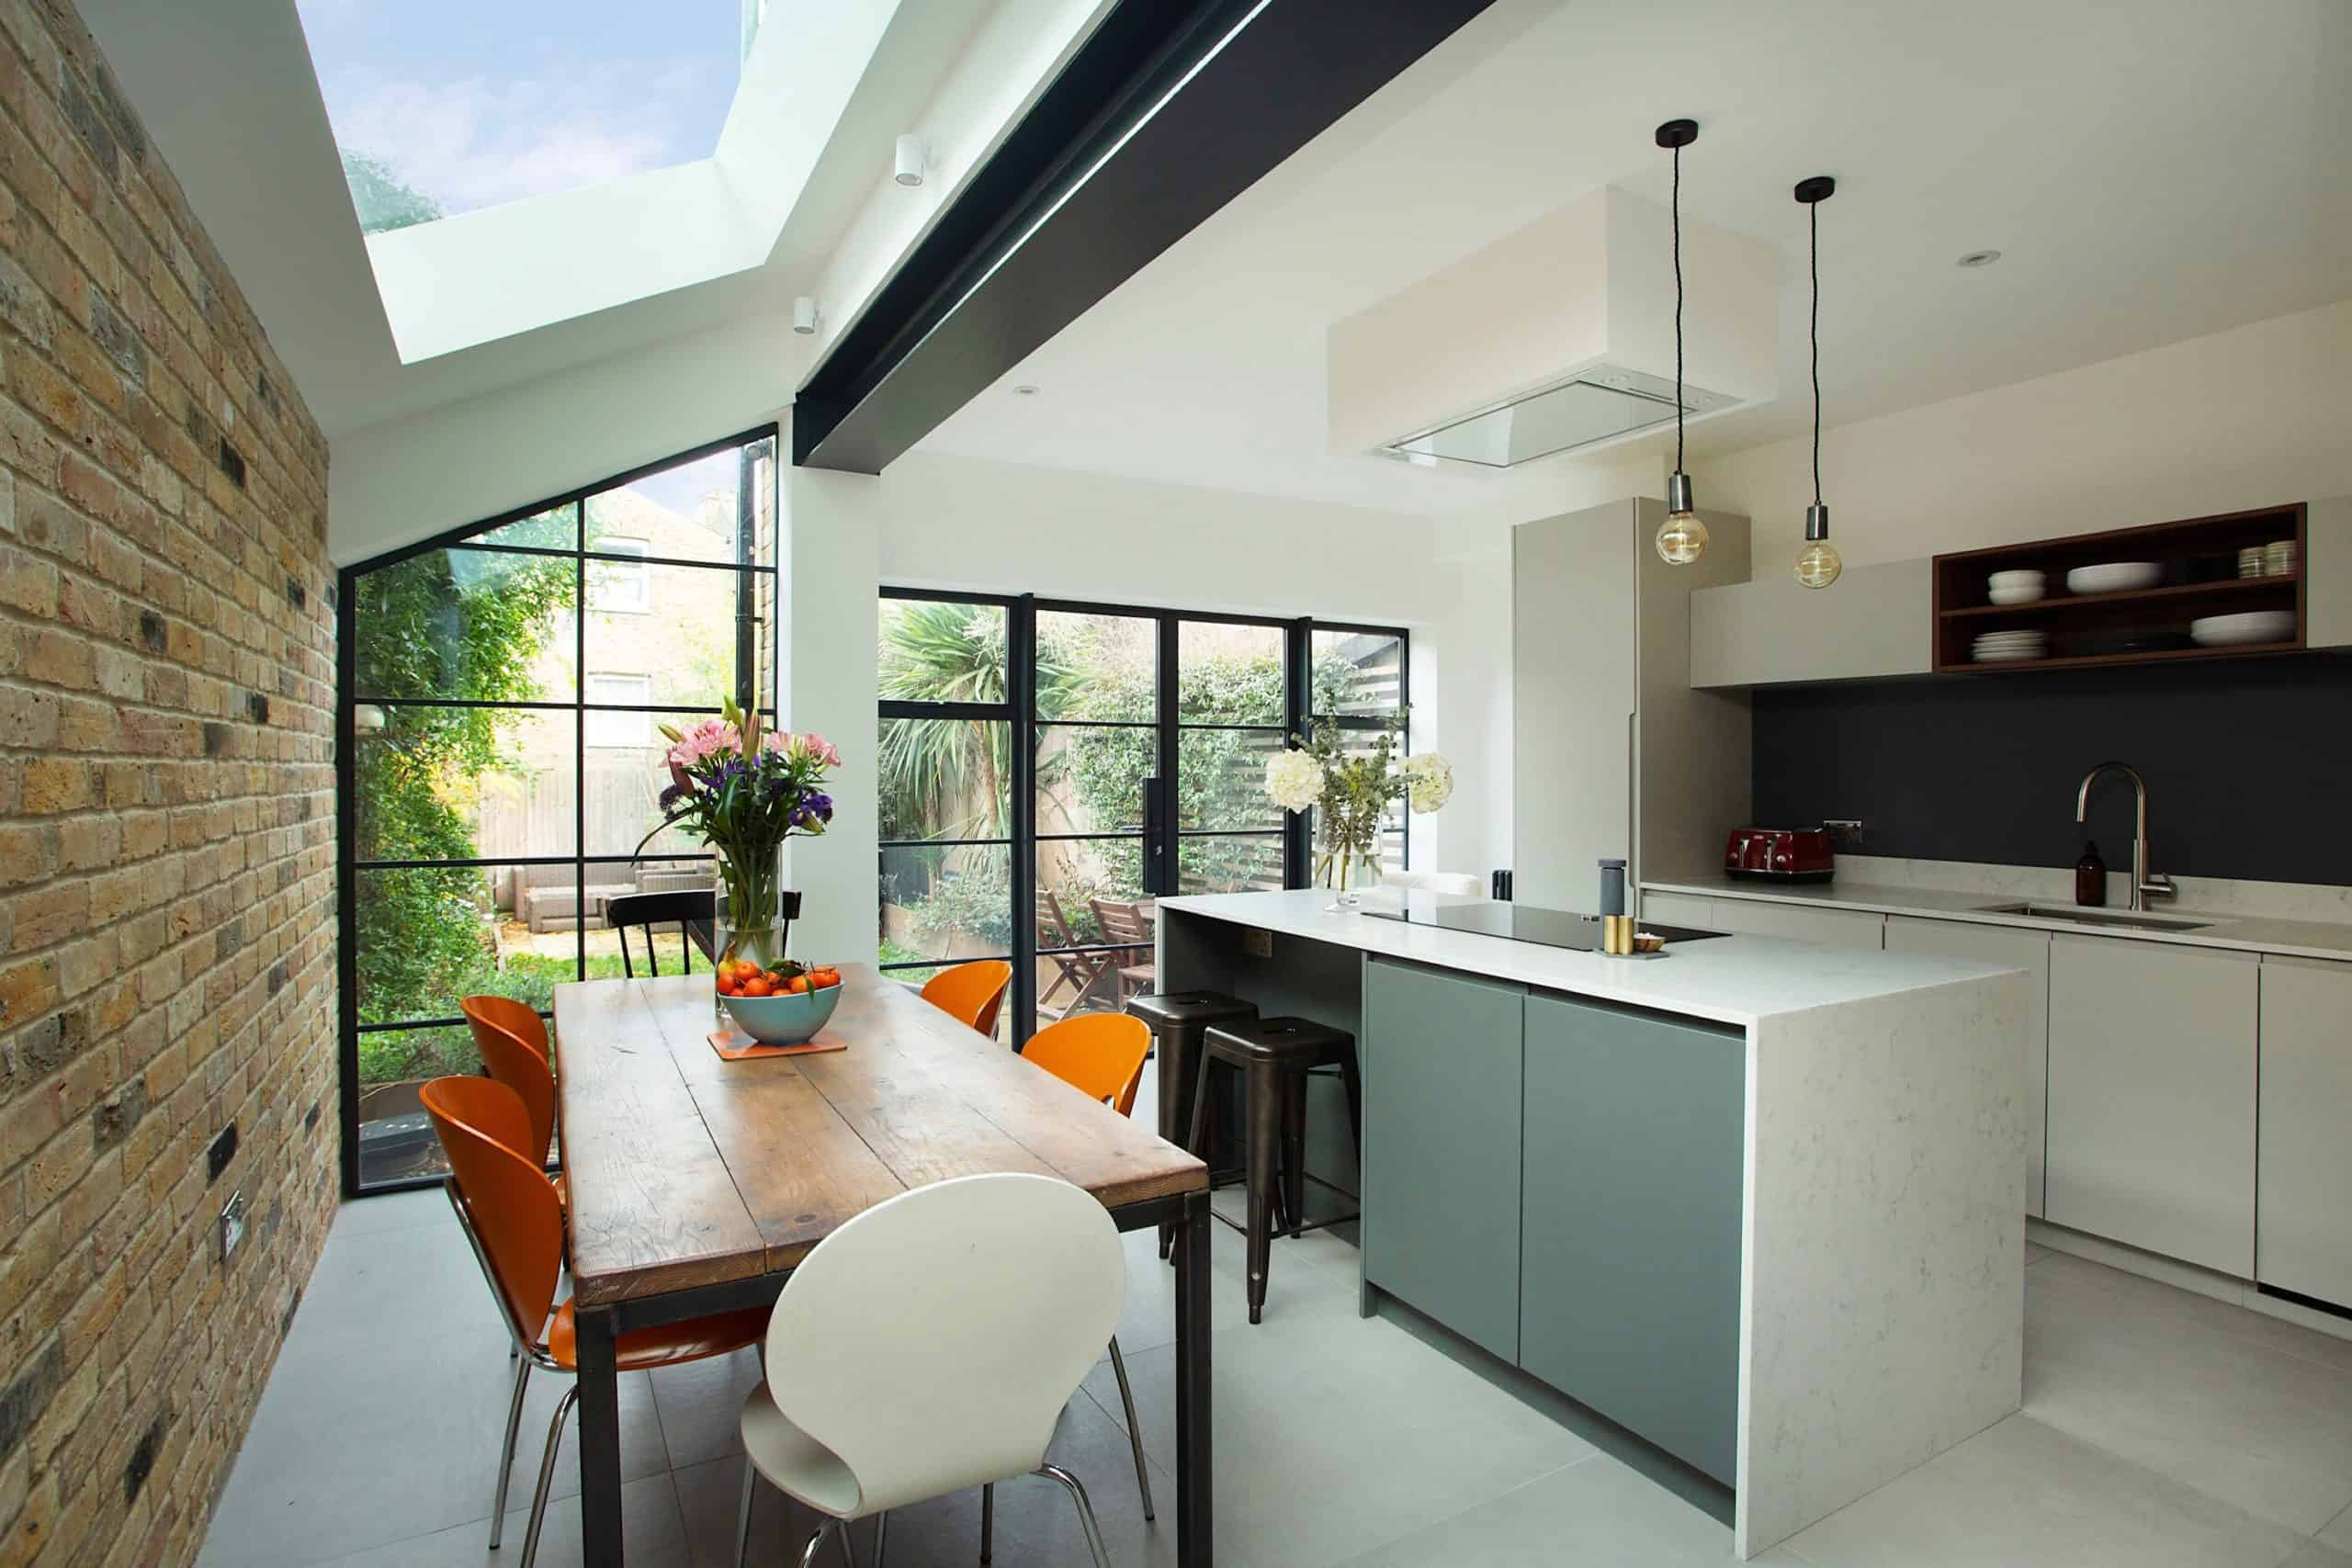 Side return kitchen extensions: Design ideas